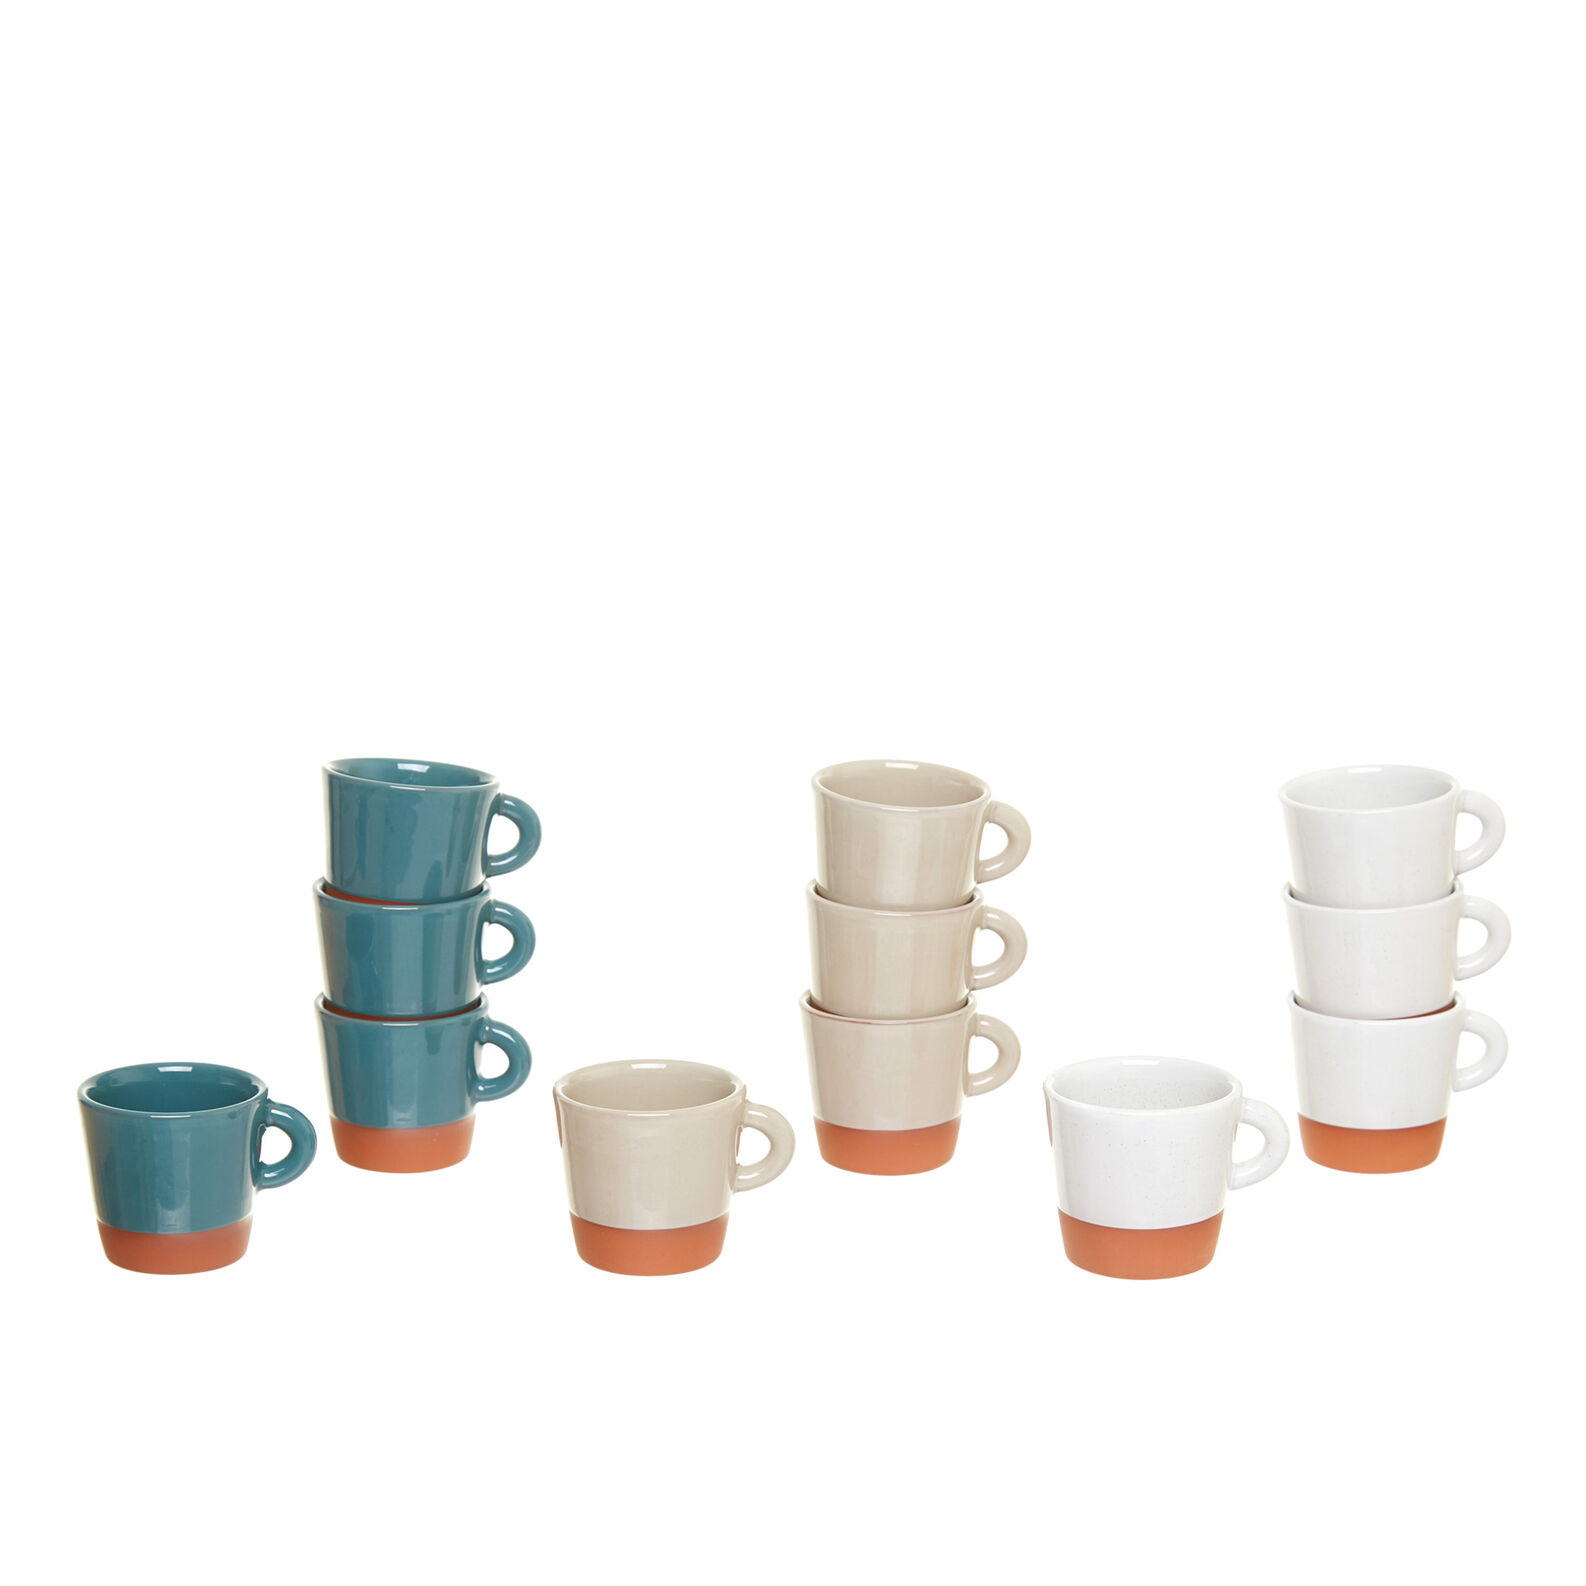 Coloured terracotta coffee cup